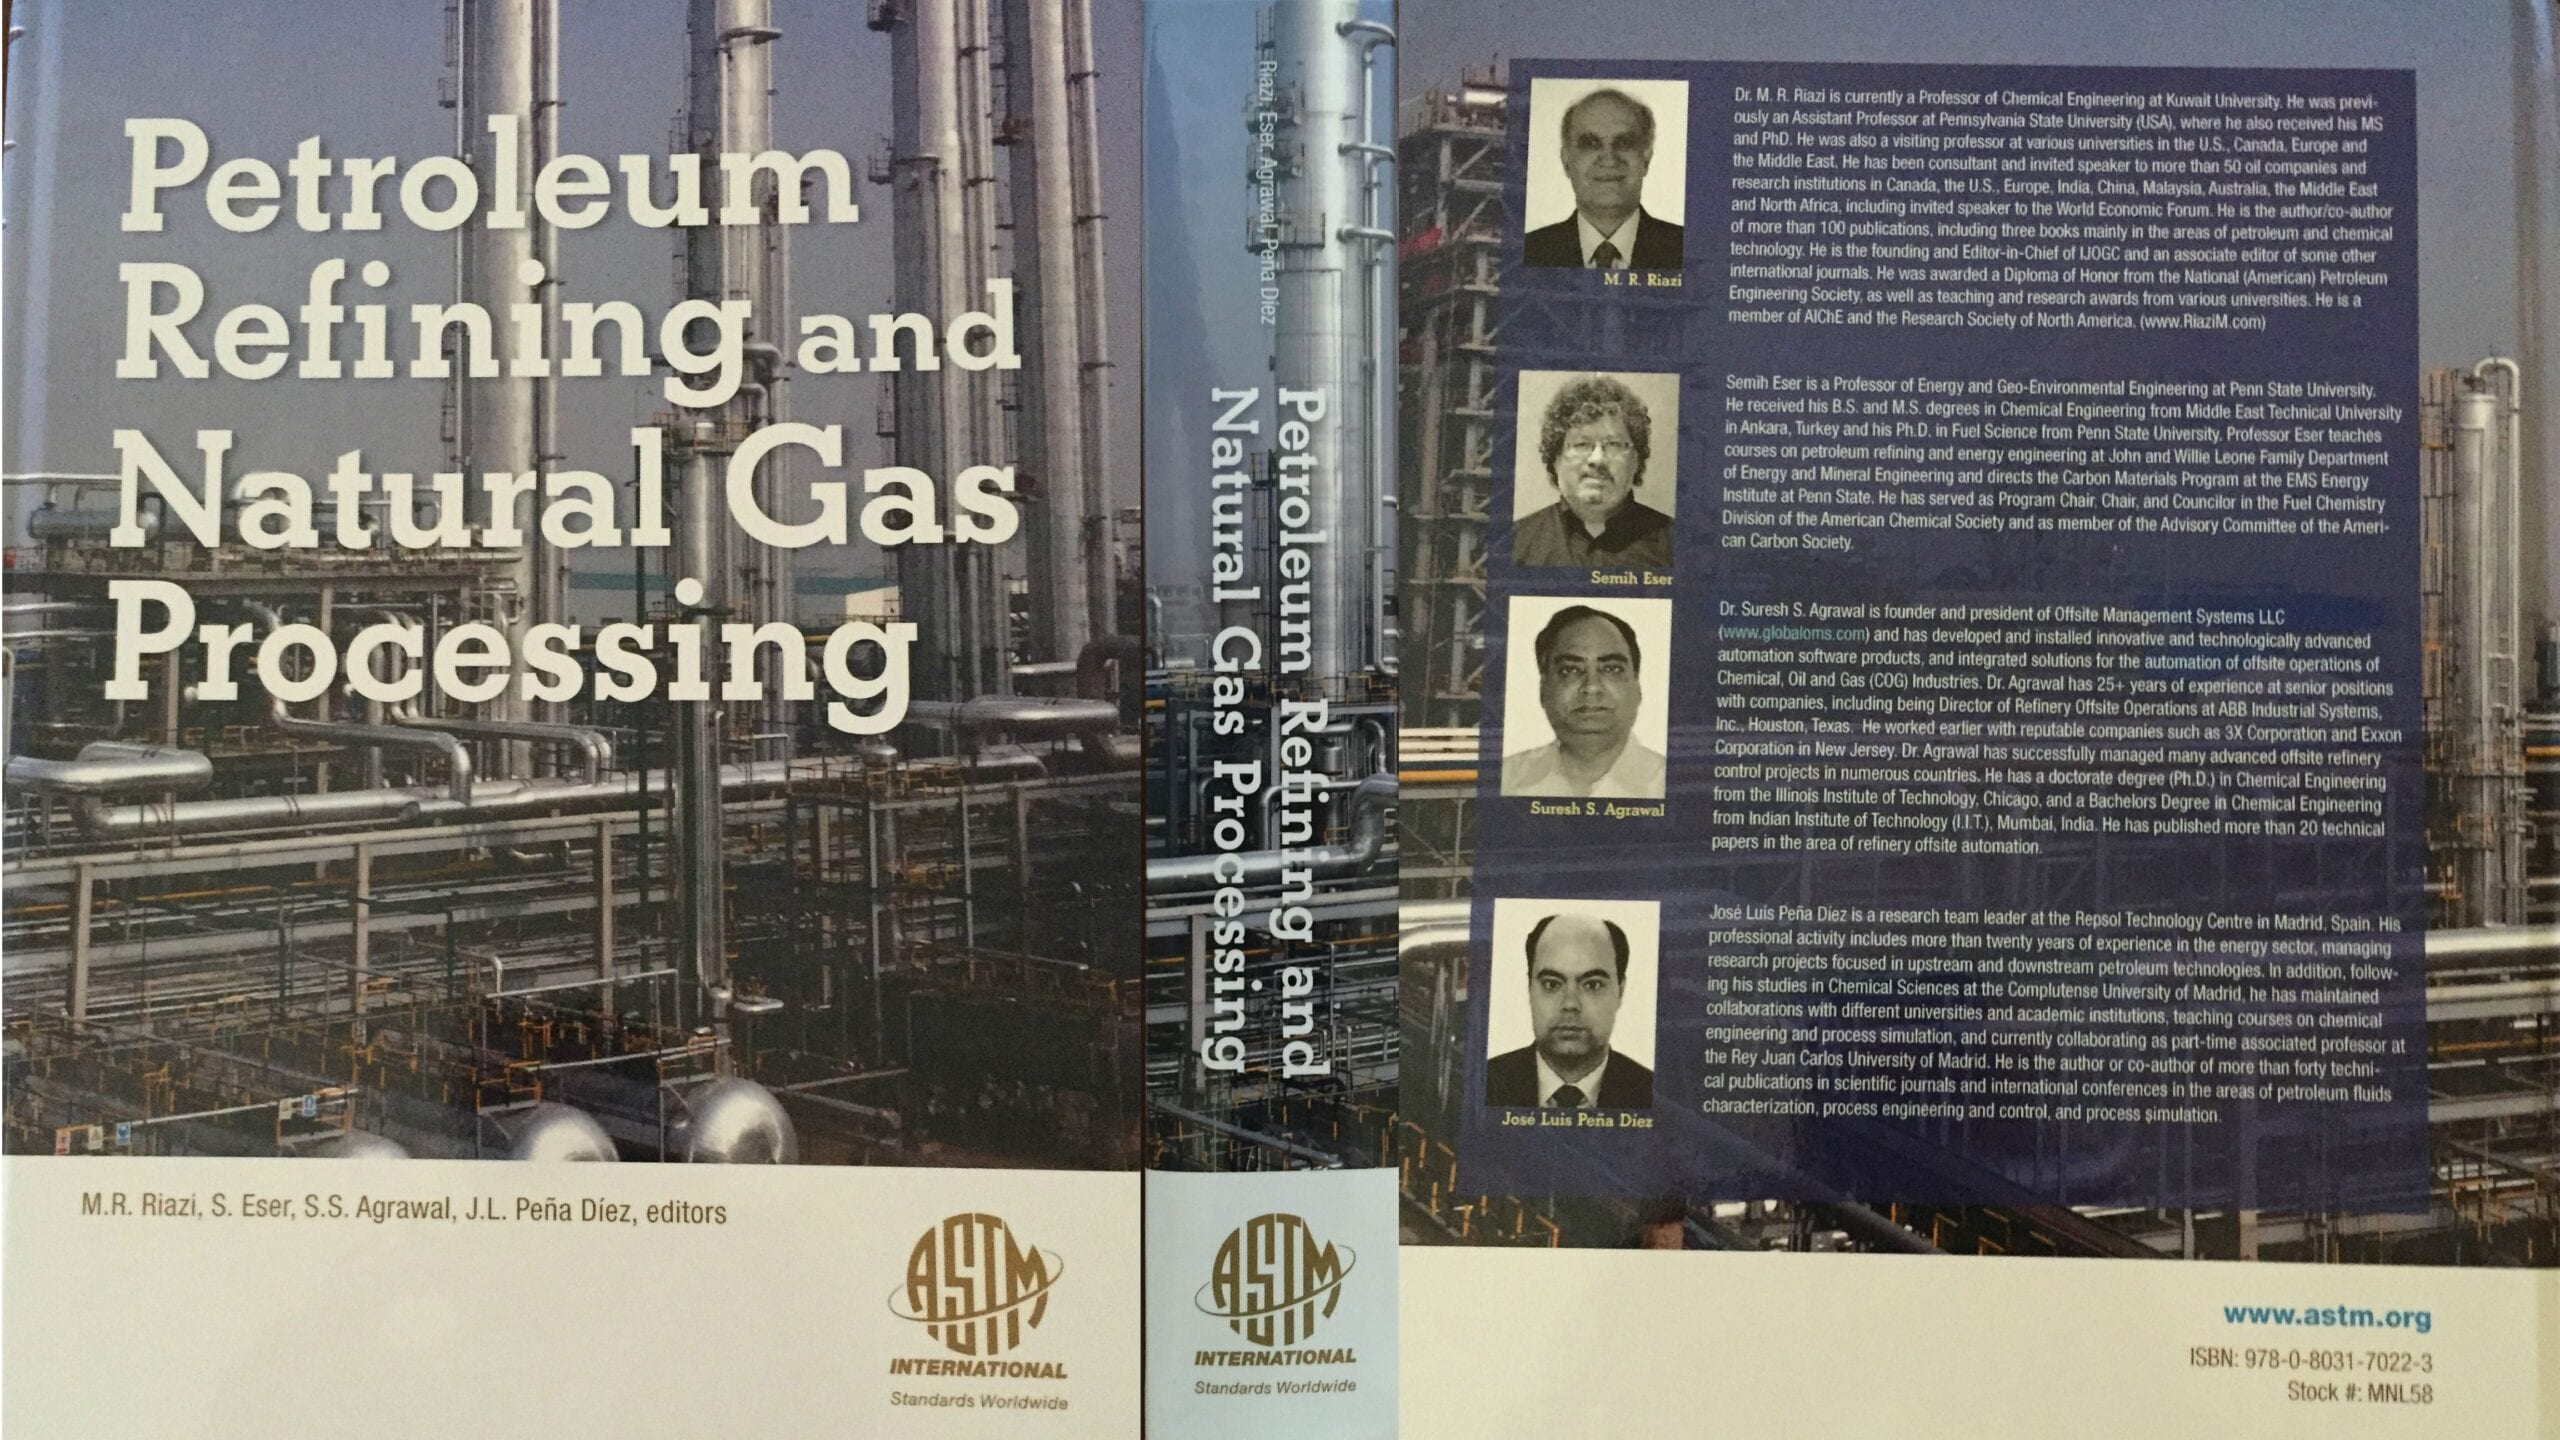 MNL58-Petroleum Refining and Natural Gas Processing Book